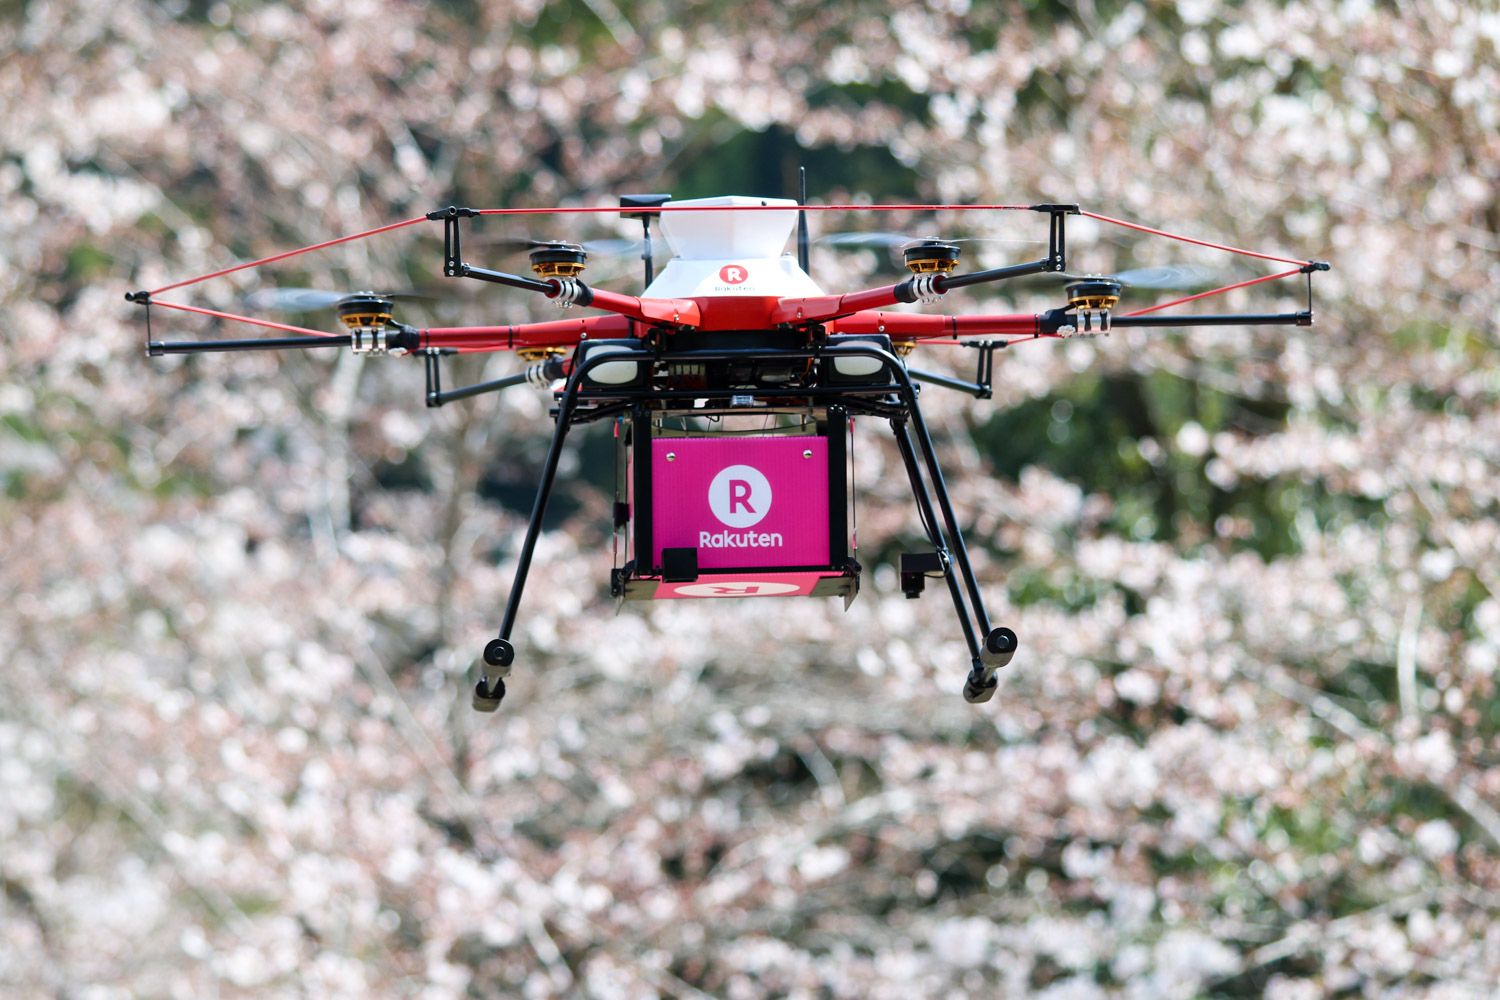 Rakuten Drone Delivery: Descending from the skies against a backdrop of pink-white cherry blossoms, a box full of soy sauce, ink, salt and coloring pencils became the first drone delivery to a private residence in Japan on Monday.